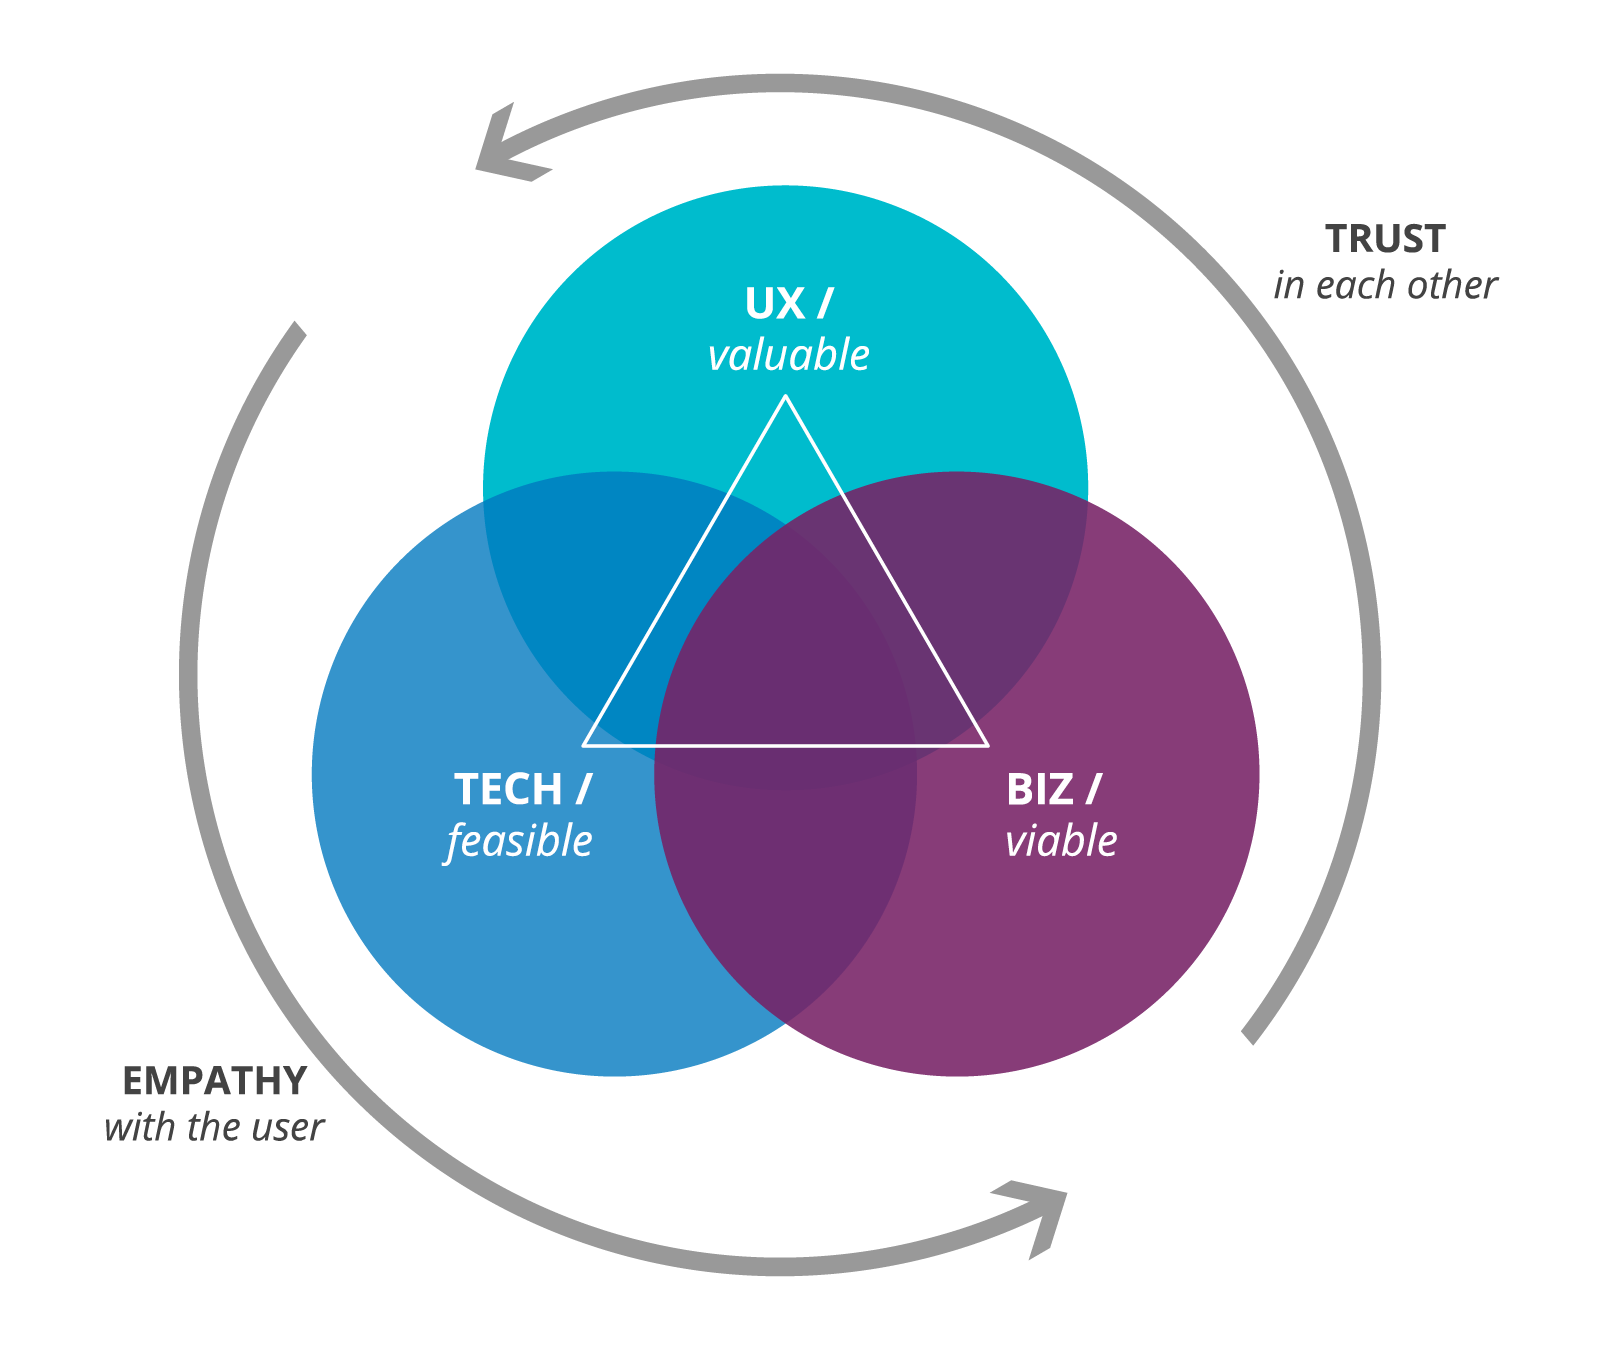 The Three Lenses of Innovation: A three circle Venn diagram contains UX (valuable), Biz (viable), Tech (feasible) in equal amounts, connected by a triangle. On the outside are two circular arrows running counter clockwise to indicate the movement of empathy with the user and trust in each other.